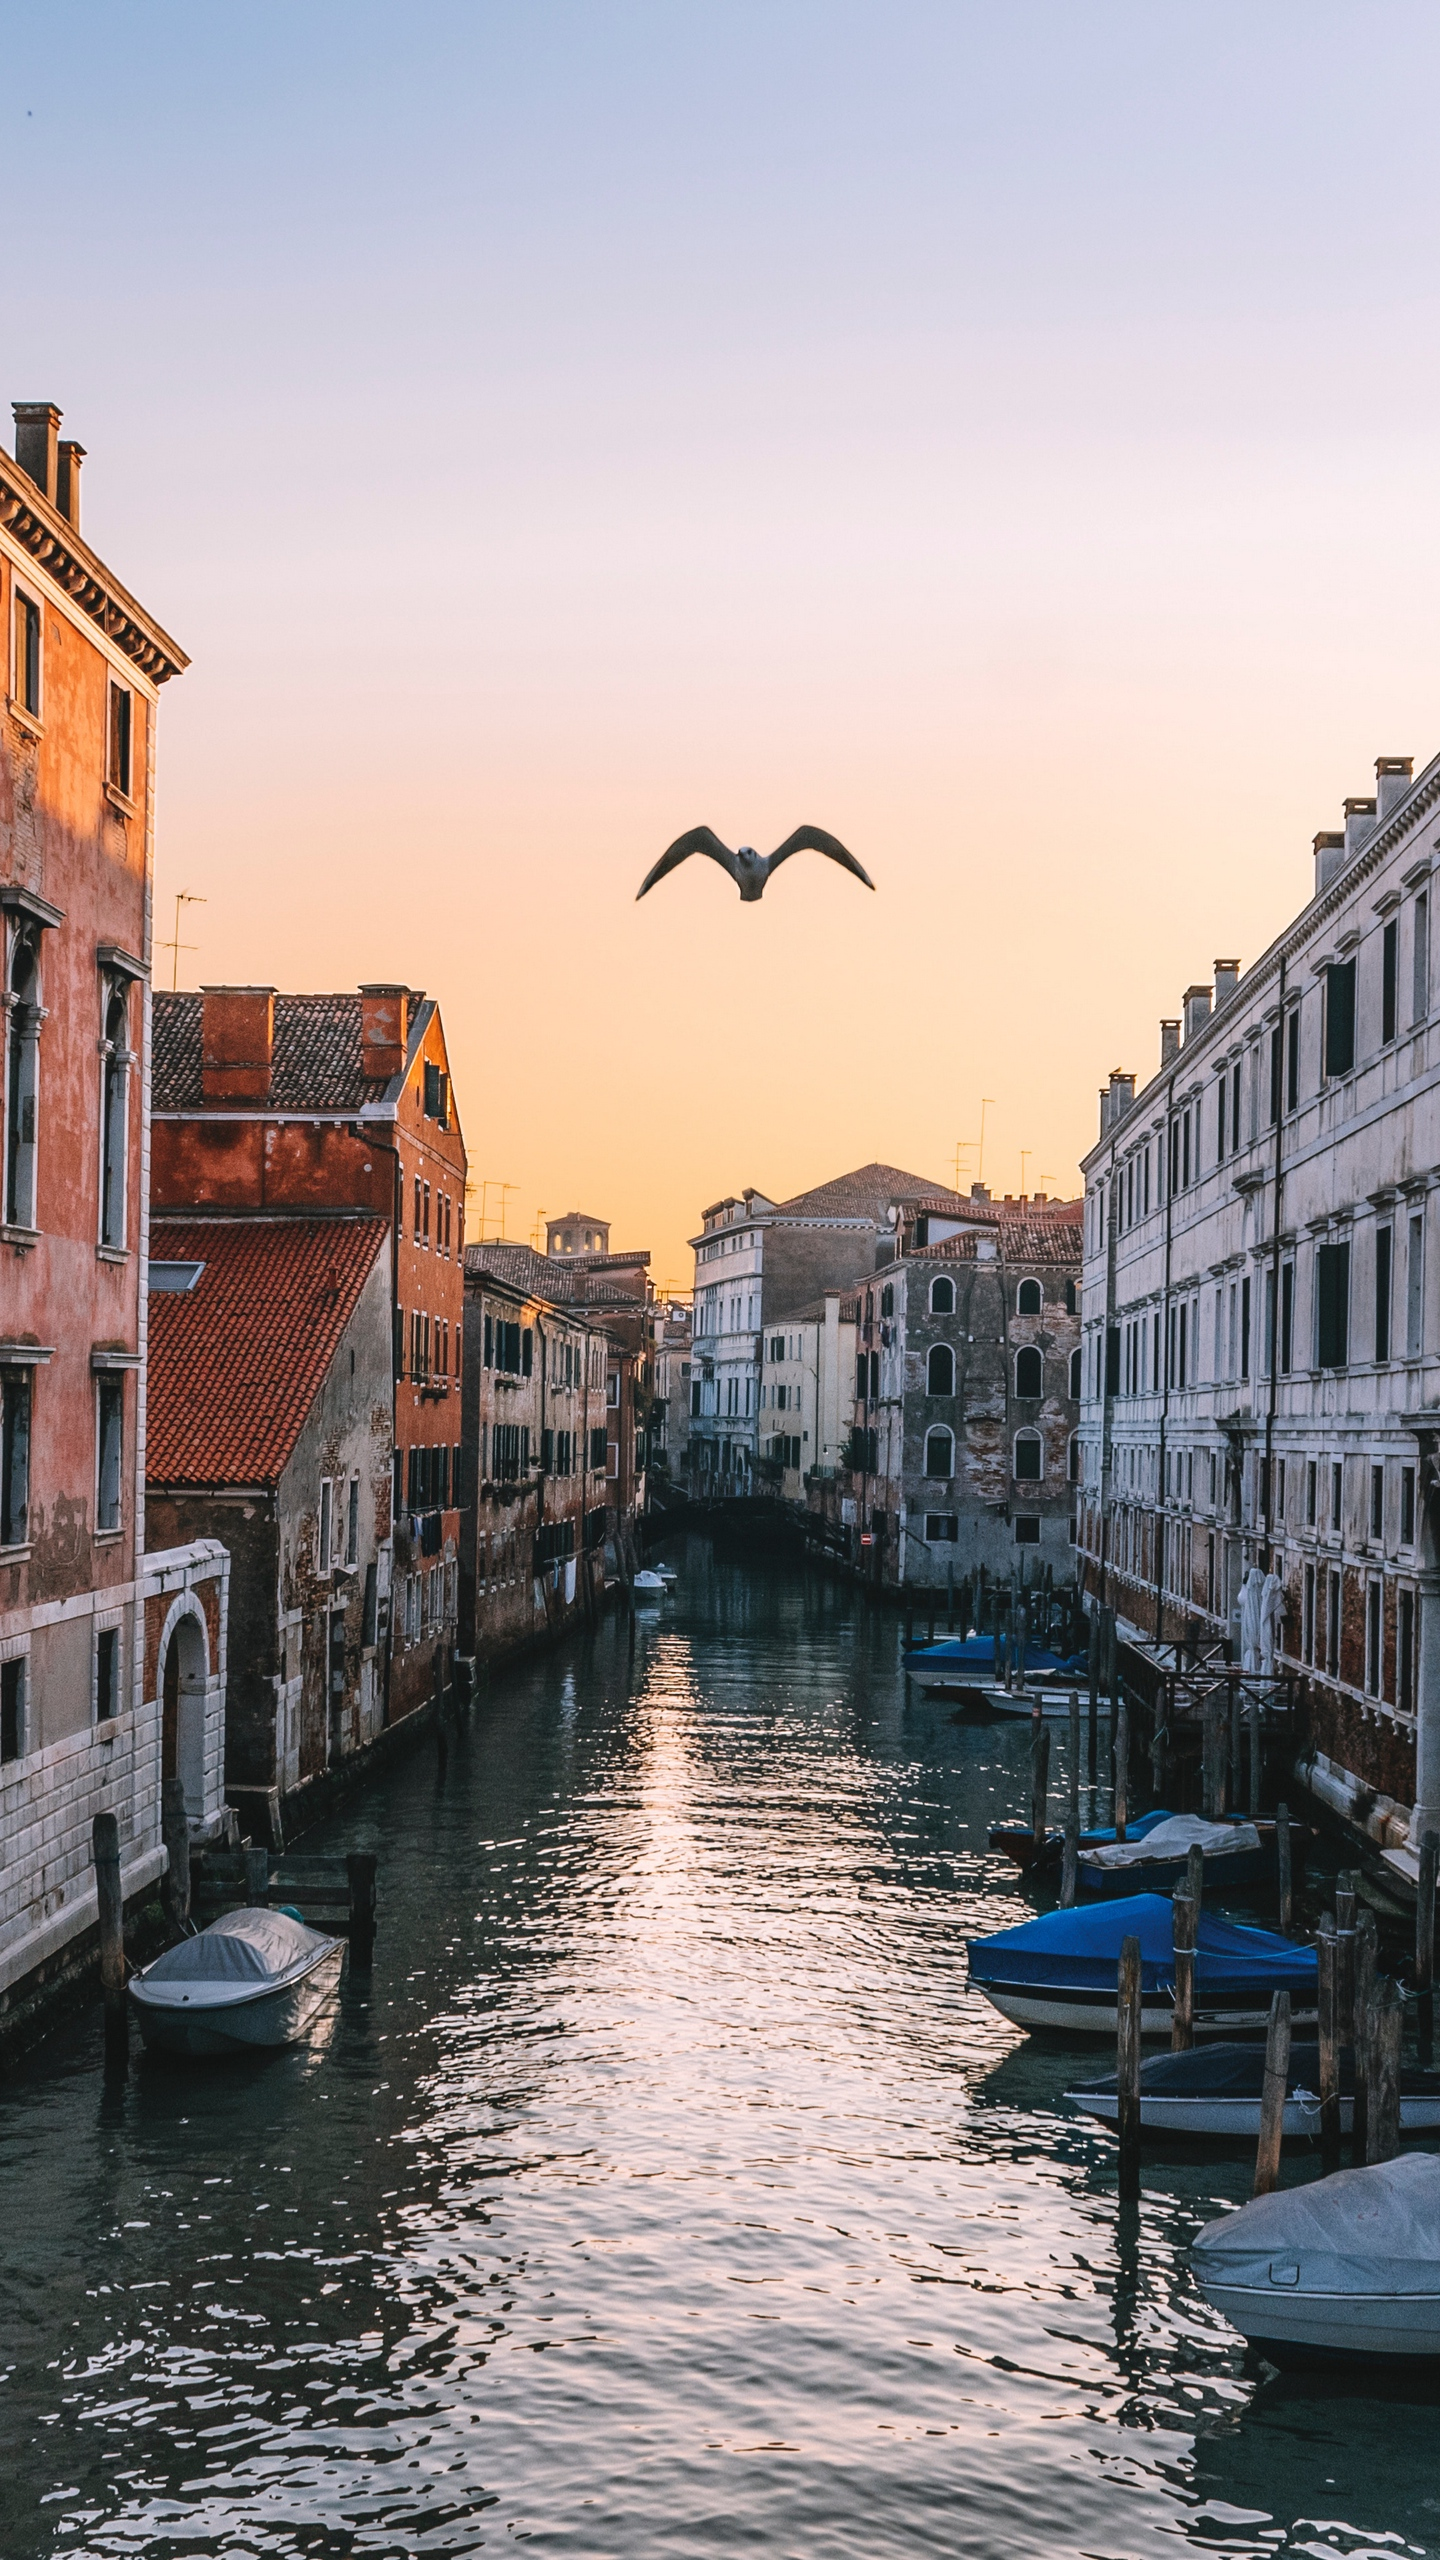 Download wallpaper 1440x2560 venice italy canal seagull river 1440x2560